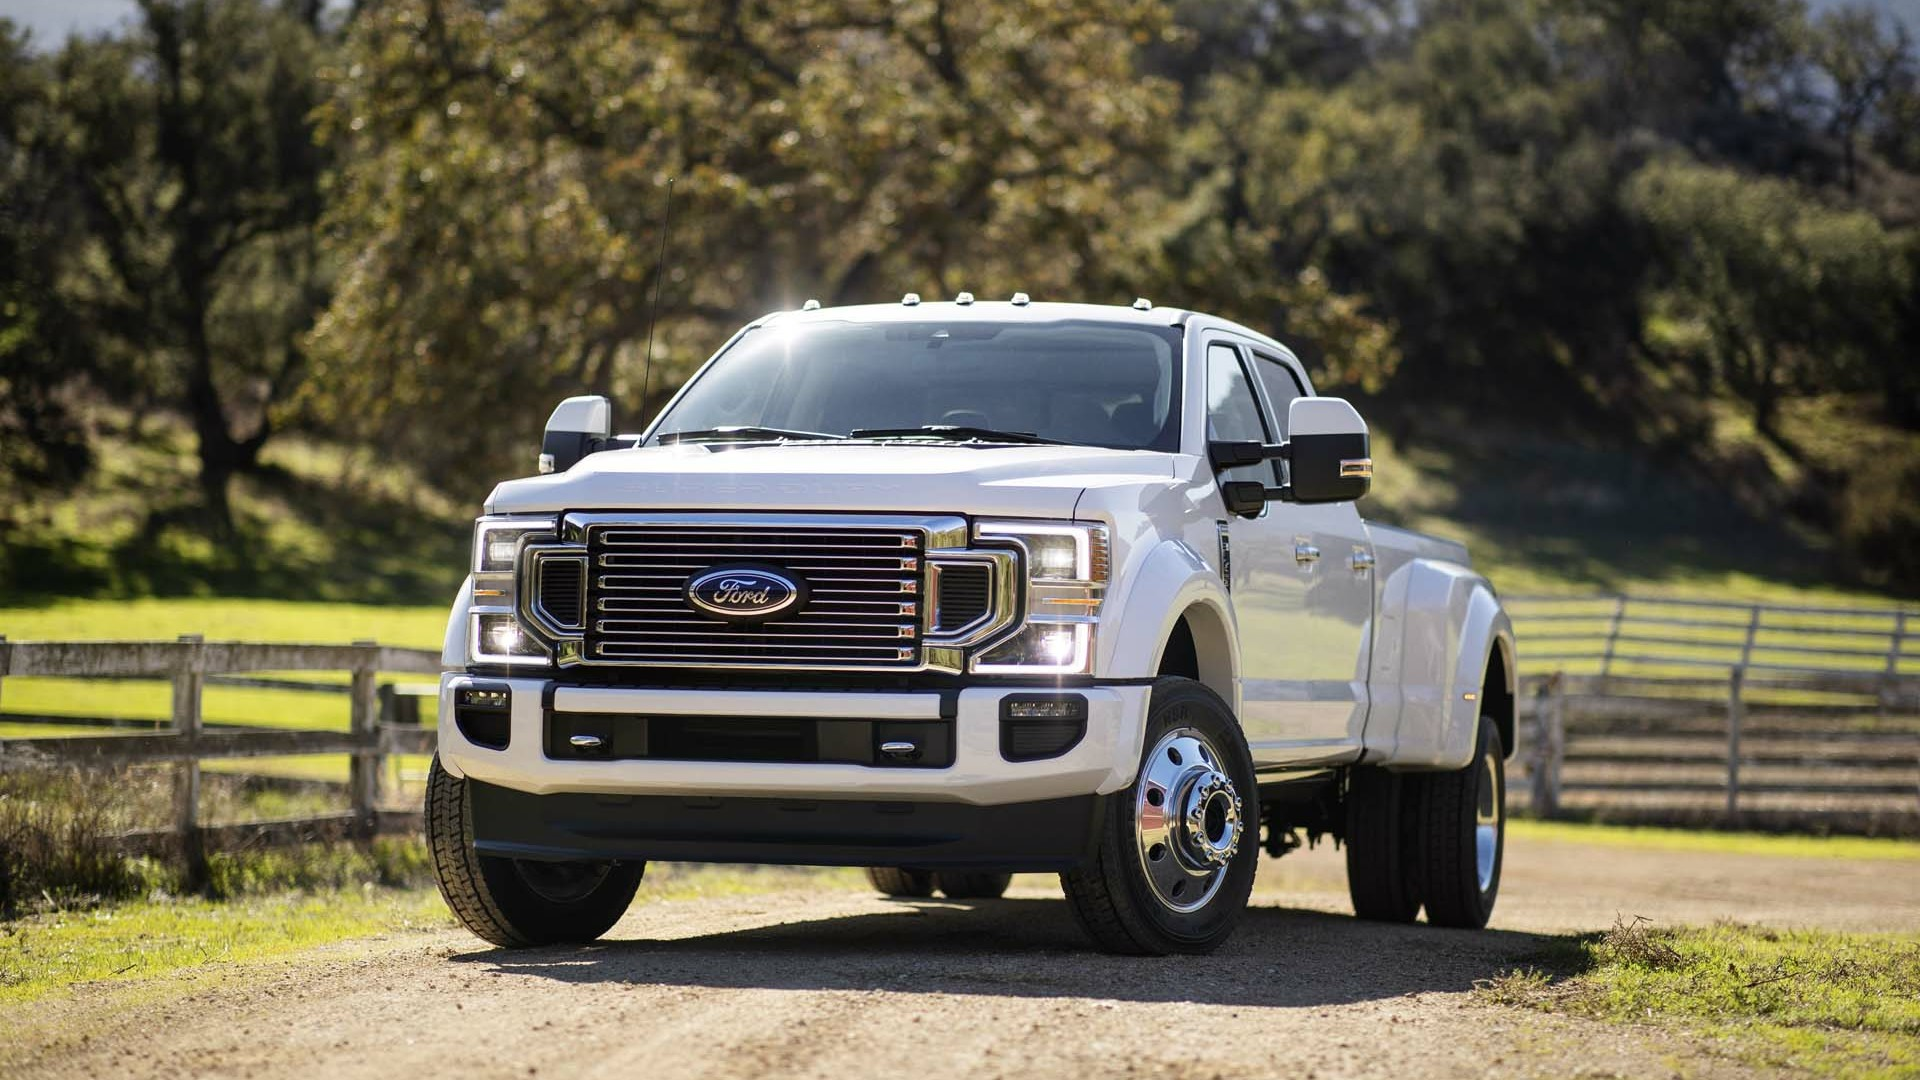 79 Best 2020 Ford F450 Super Duty Price Design and Review